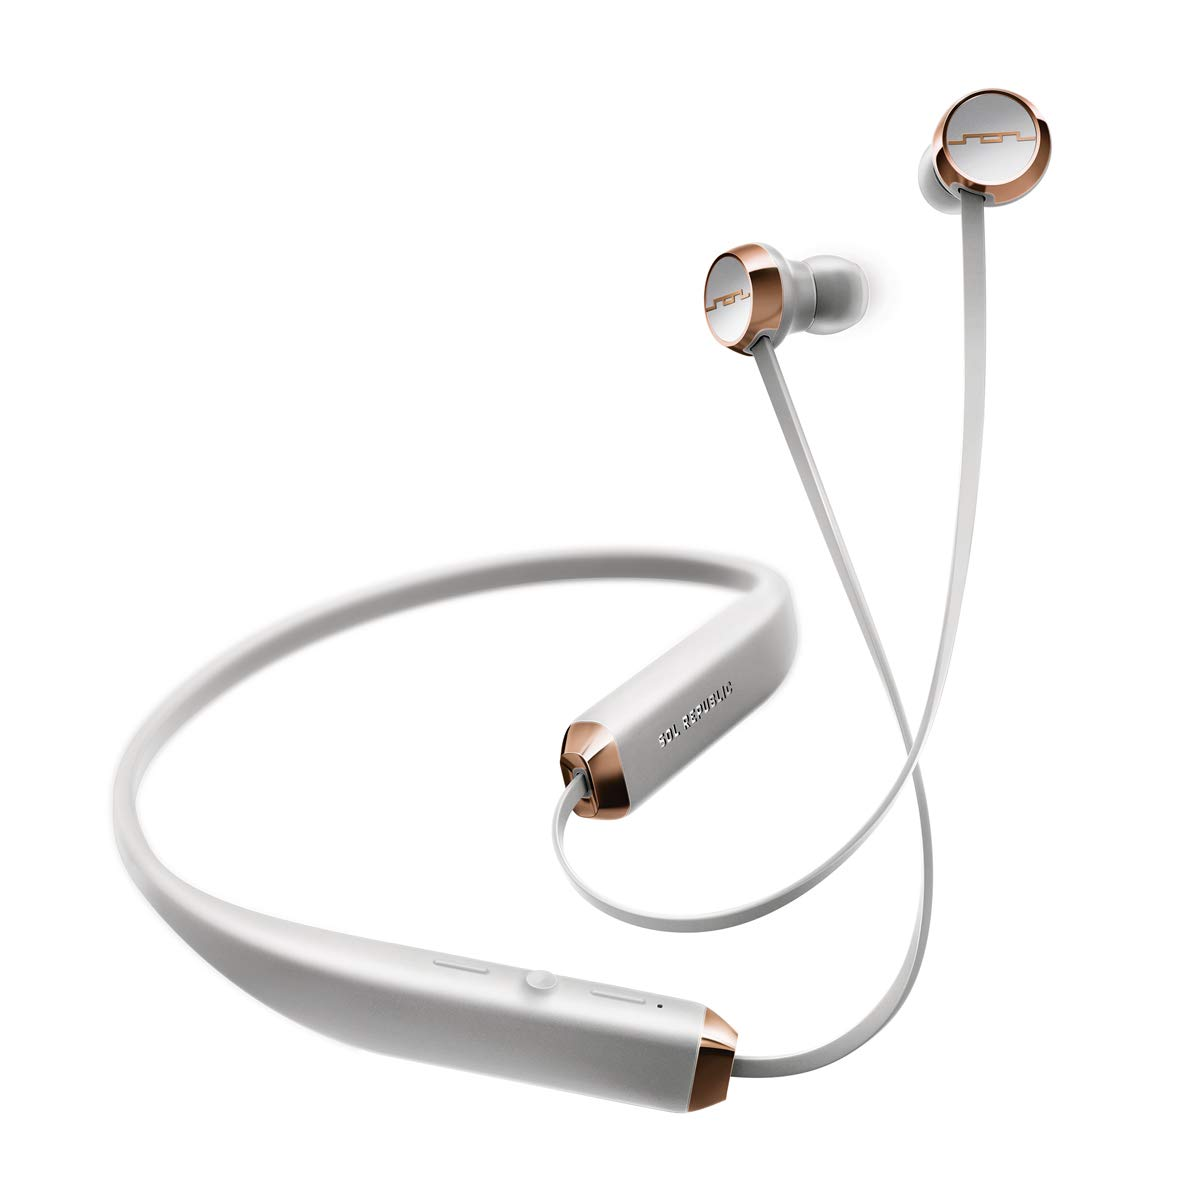 SOL REPUBLIC  Headphones opportunity- NEW- Master cartons